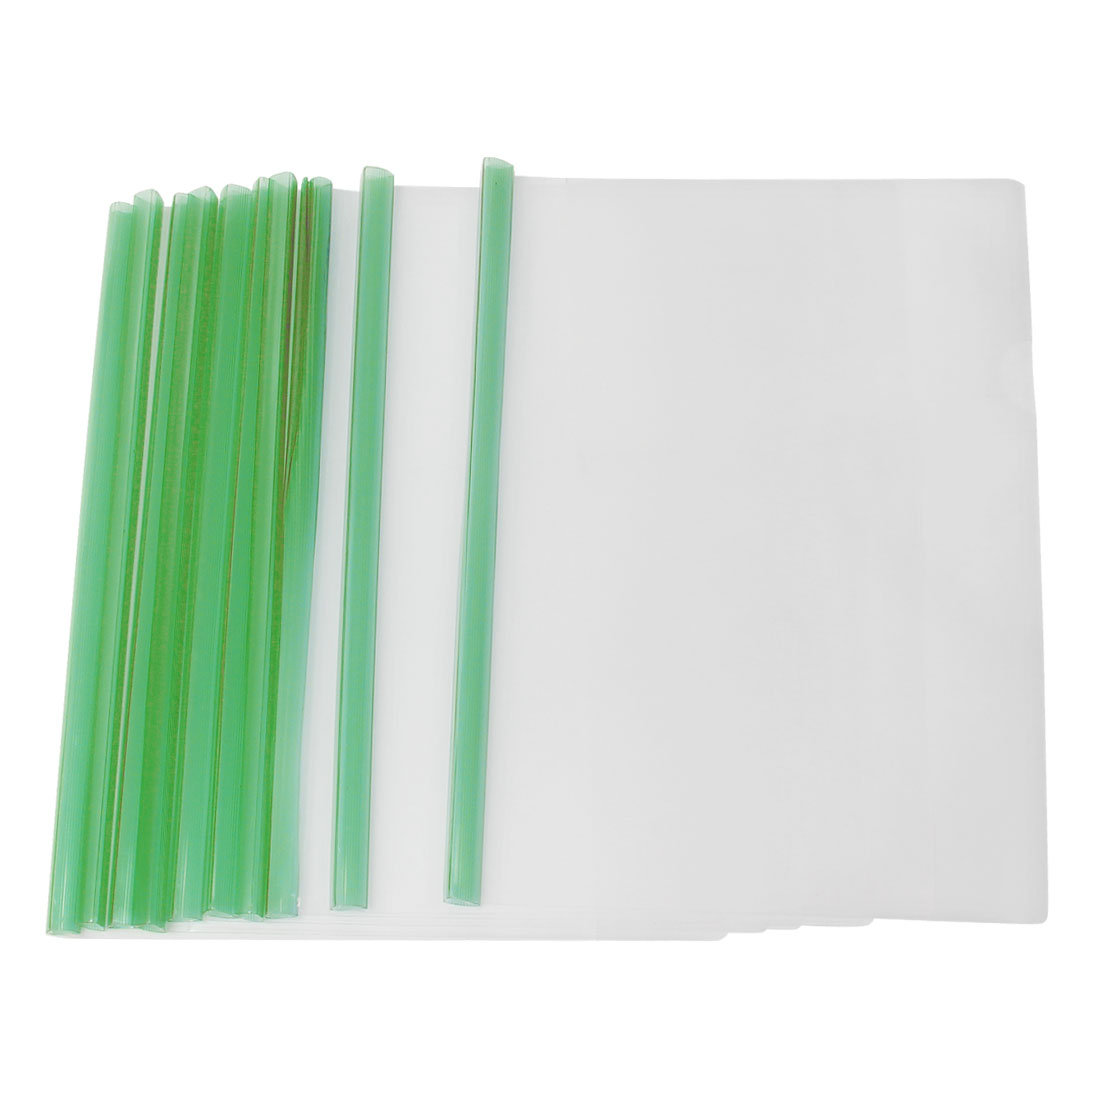 A4 Business Clear Sliding Green Bar Report File Folder 10 Pcs